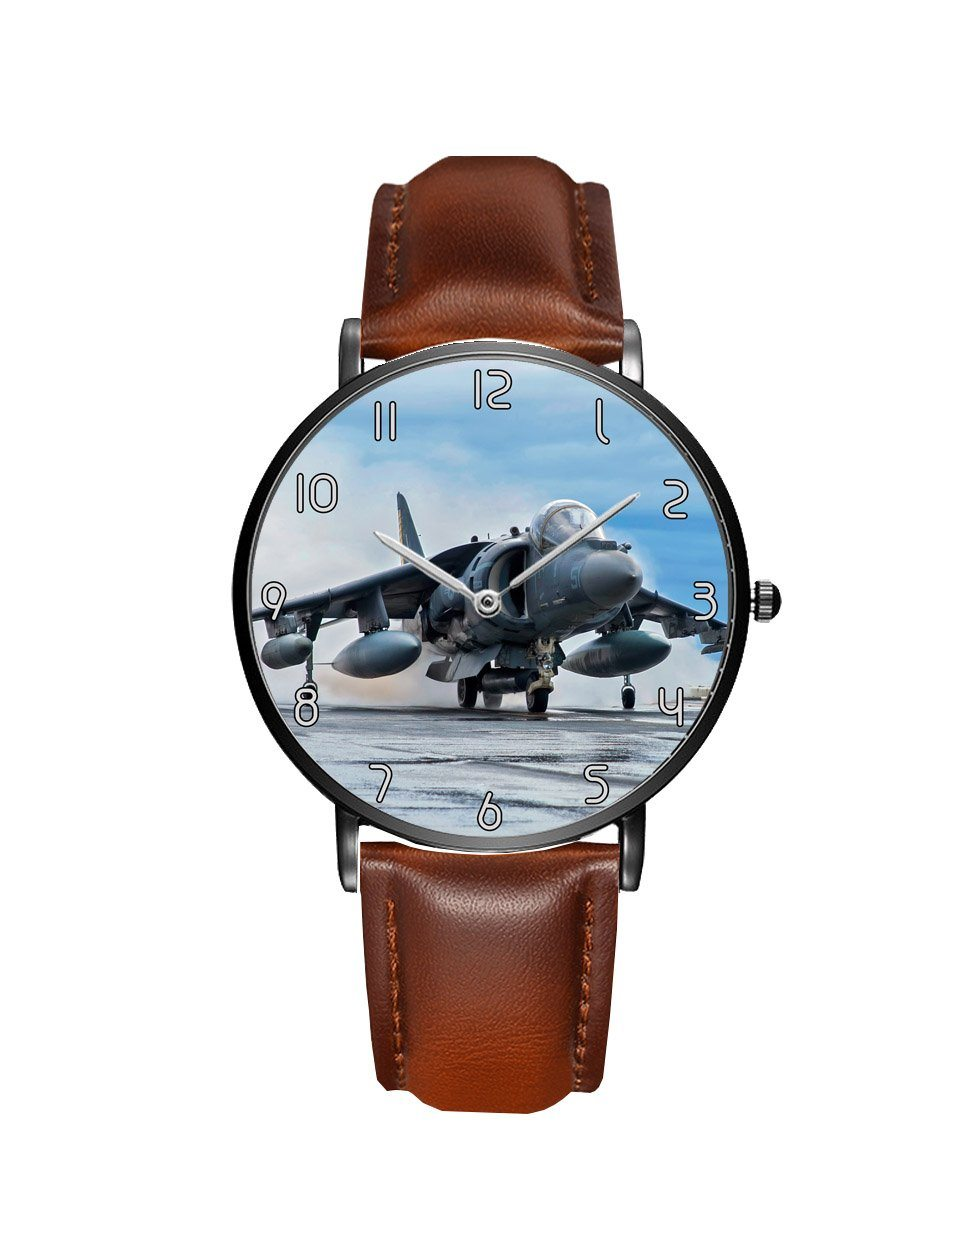 McDonnell Douglas AV-8B Harrier II Leather Strap Watches Aviation Shop Black & Brown Leather Strap